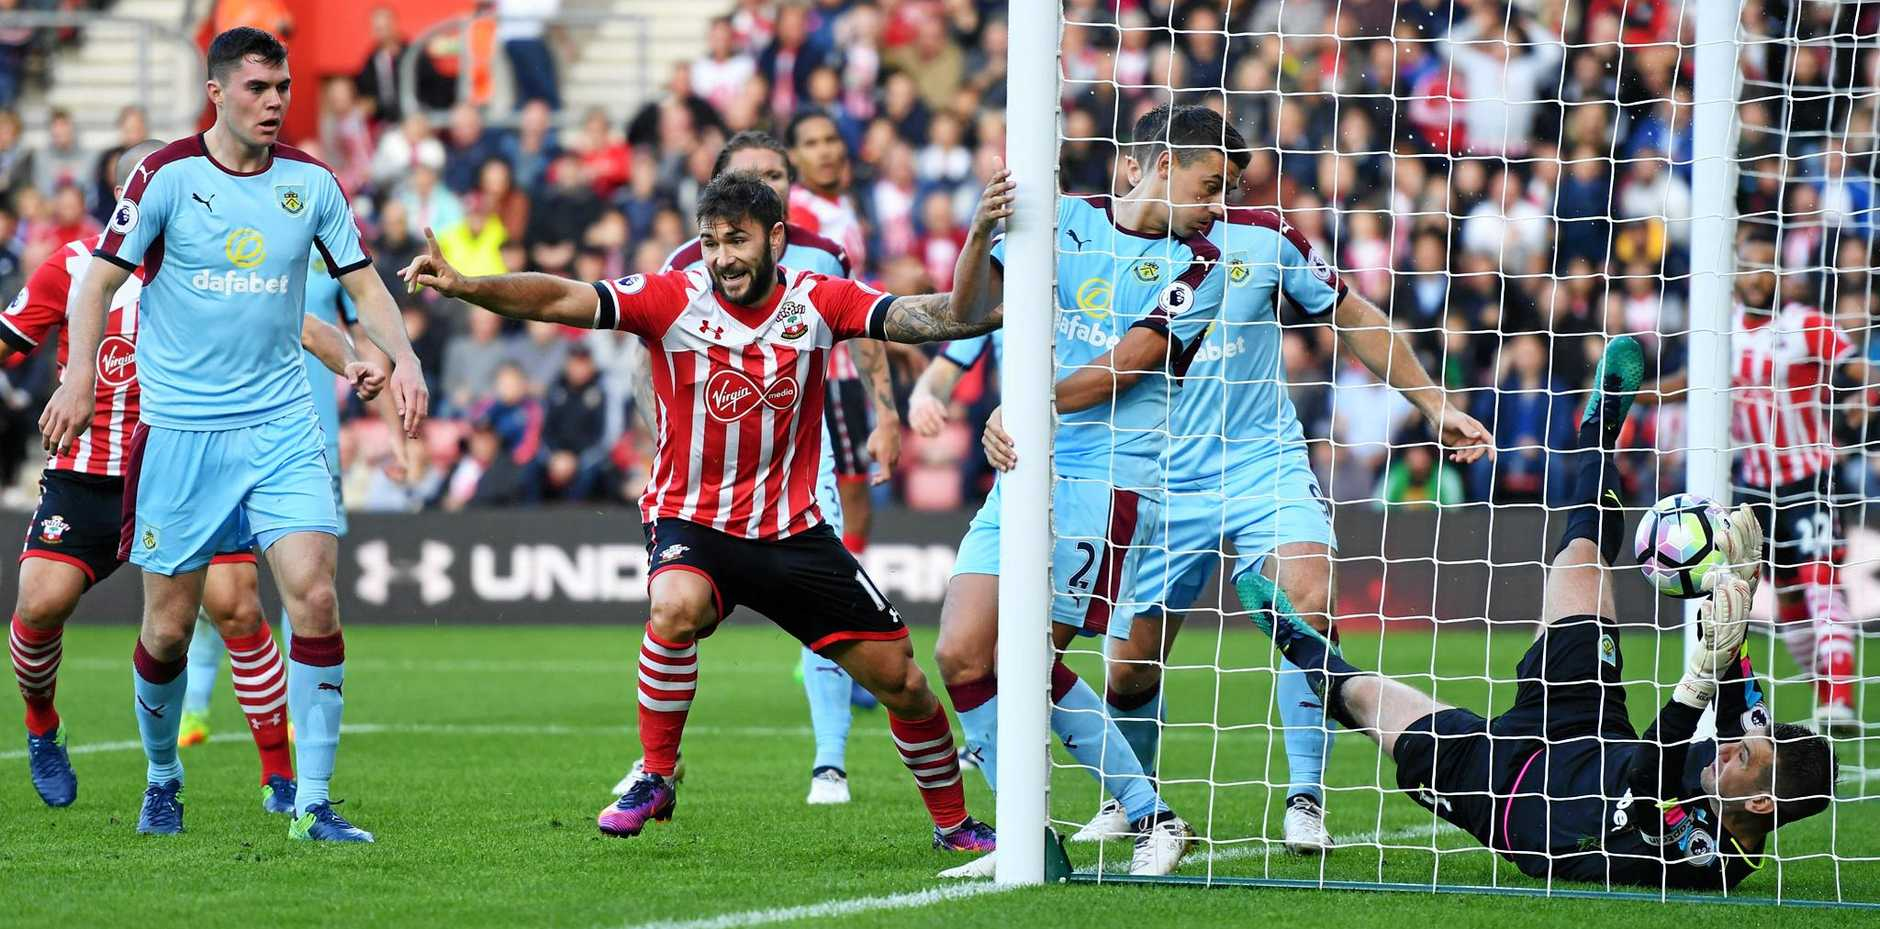 Charlie Austin of Southampton celebrates as he scores the first goal in the 3-1 win over Burnley.